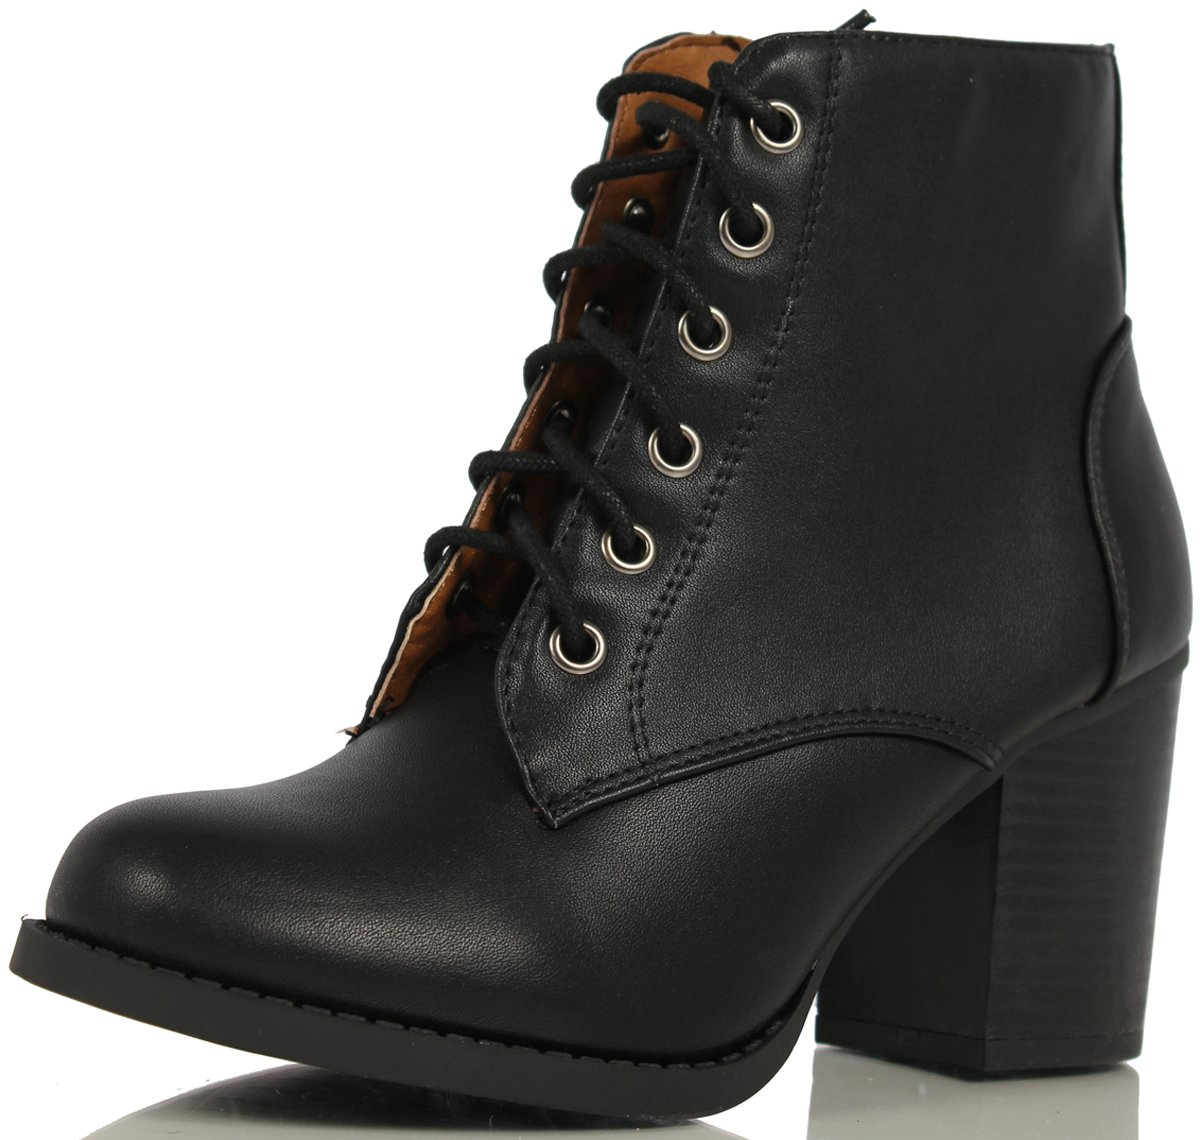 Soda Women's Korman Faux Leather Lace Up High Chunky Heel Ankle Booties, Black, 10 M US